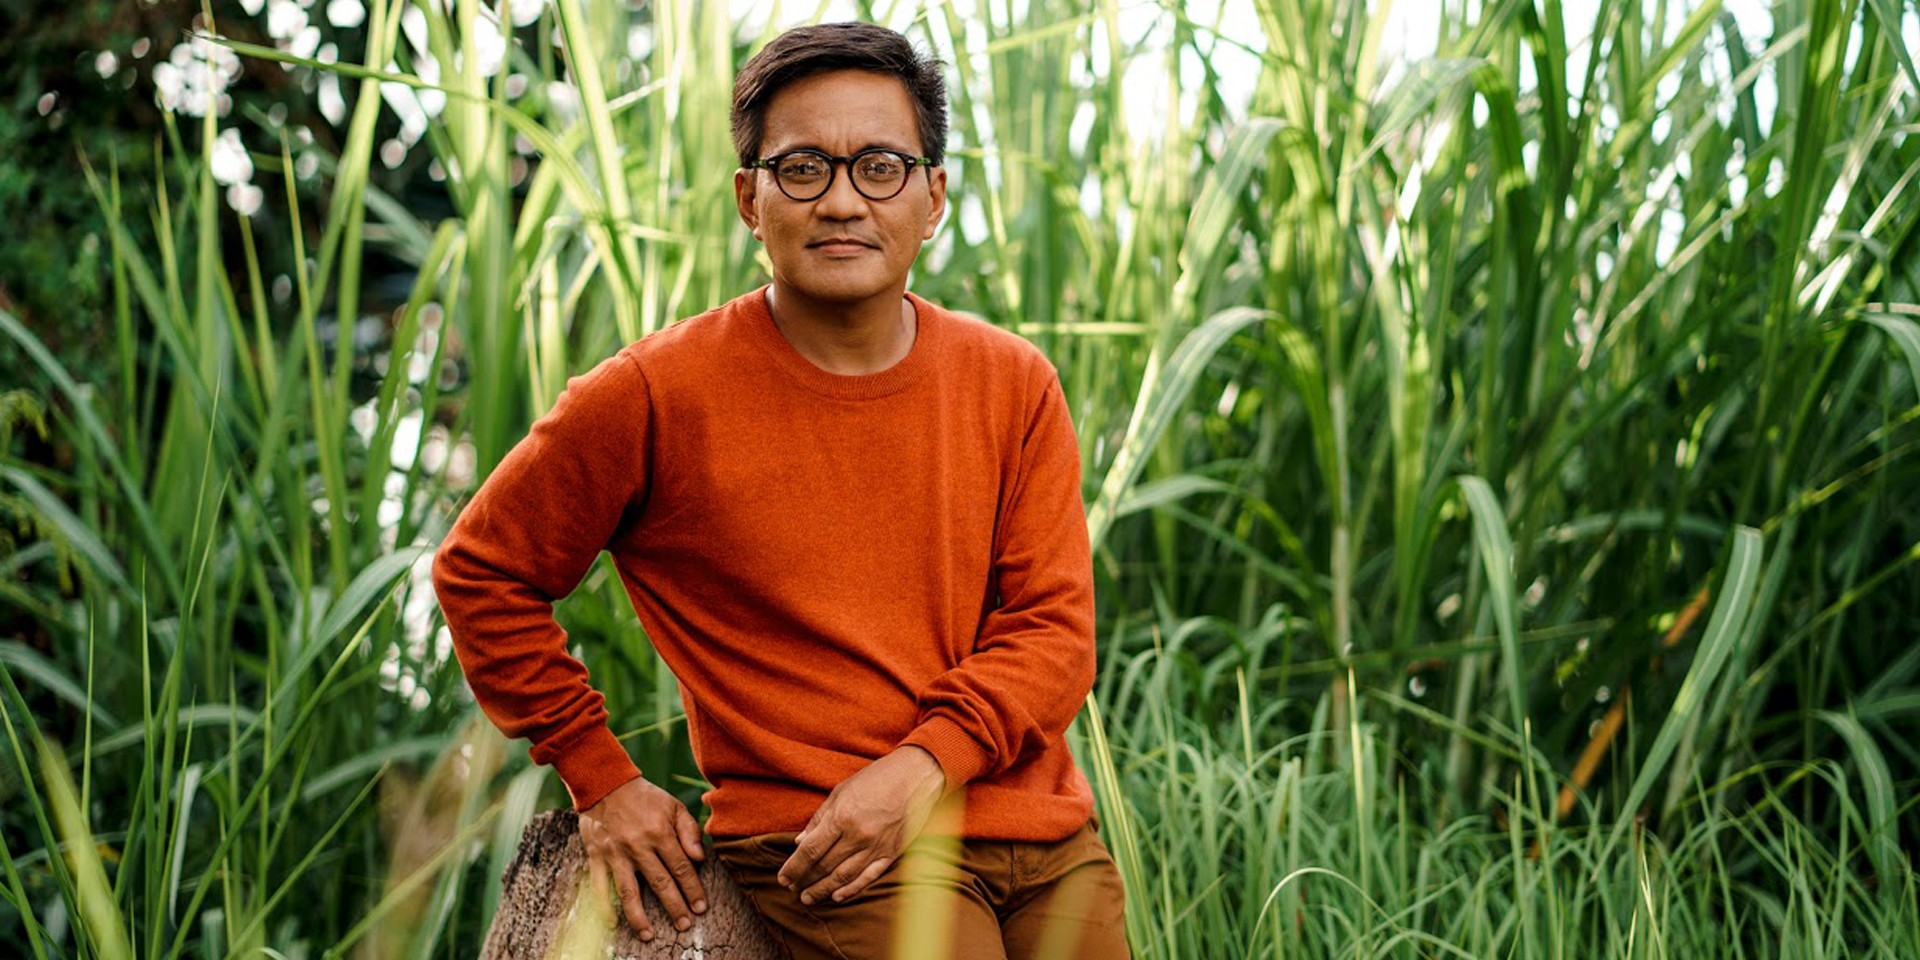 Ebe Dancel to hold first headlining concert with Manila String Machine in 2020